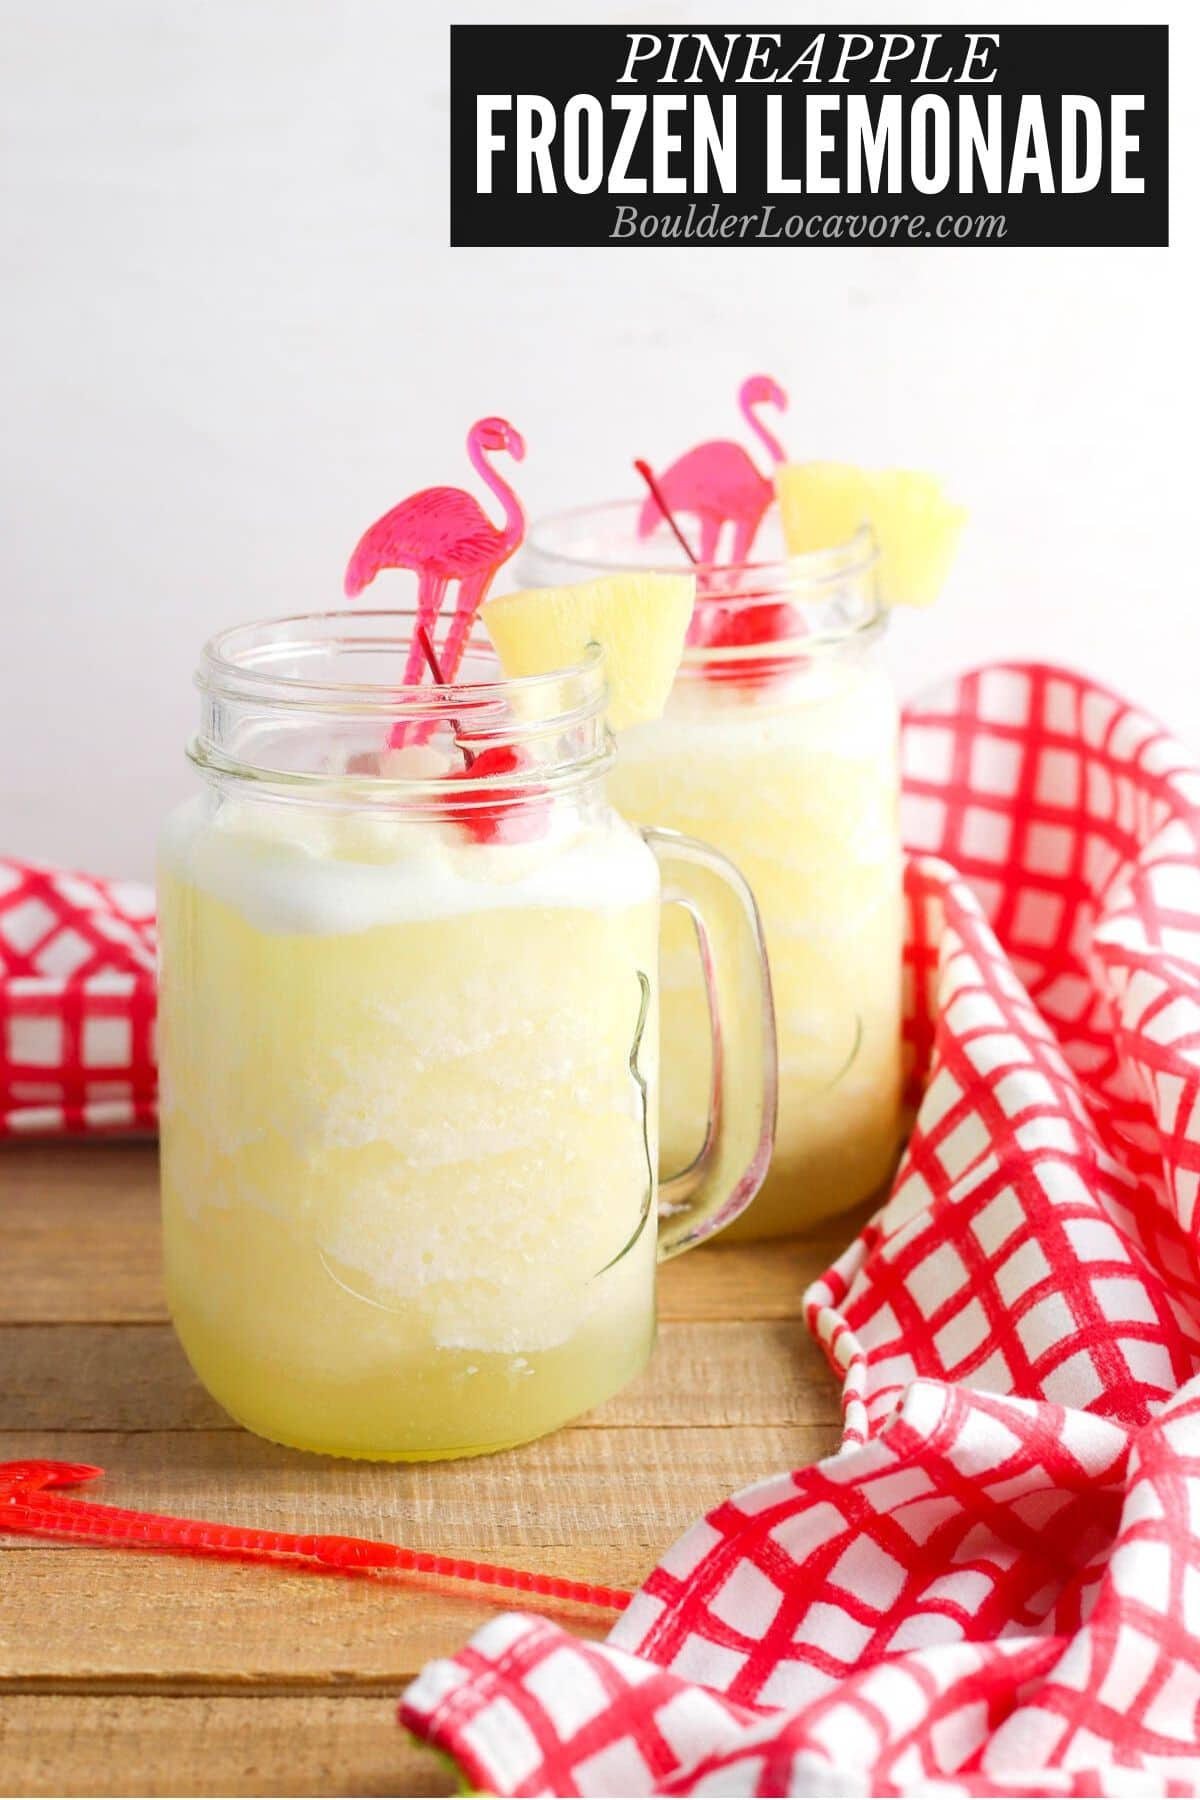 Frozen Lemonade in a glass mugs with recipe title